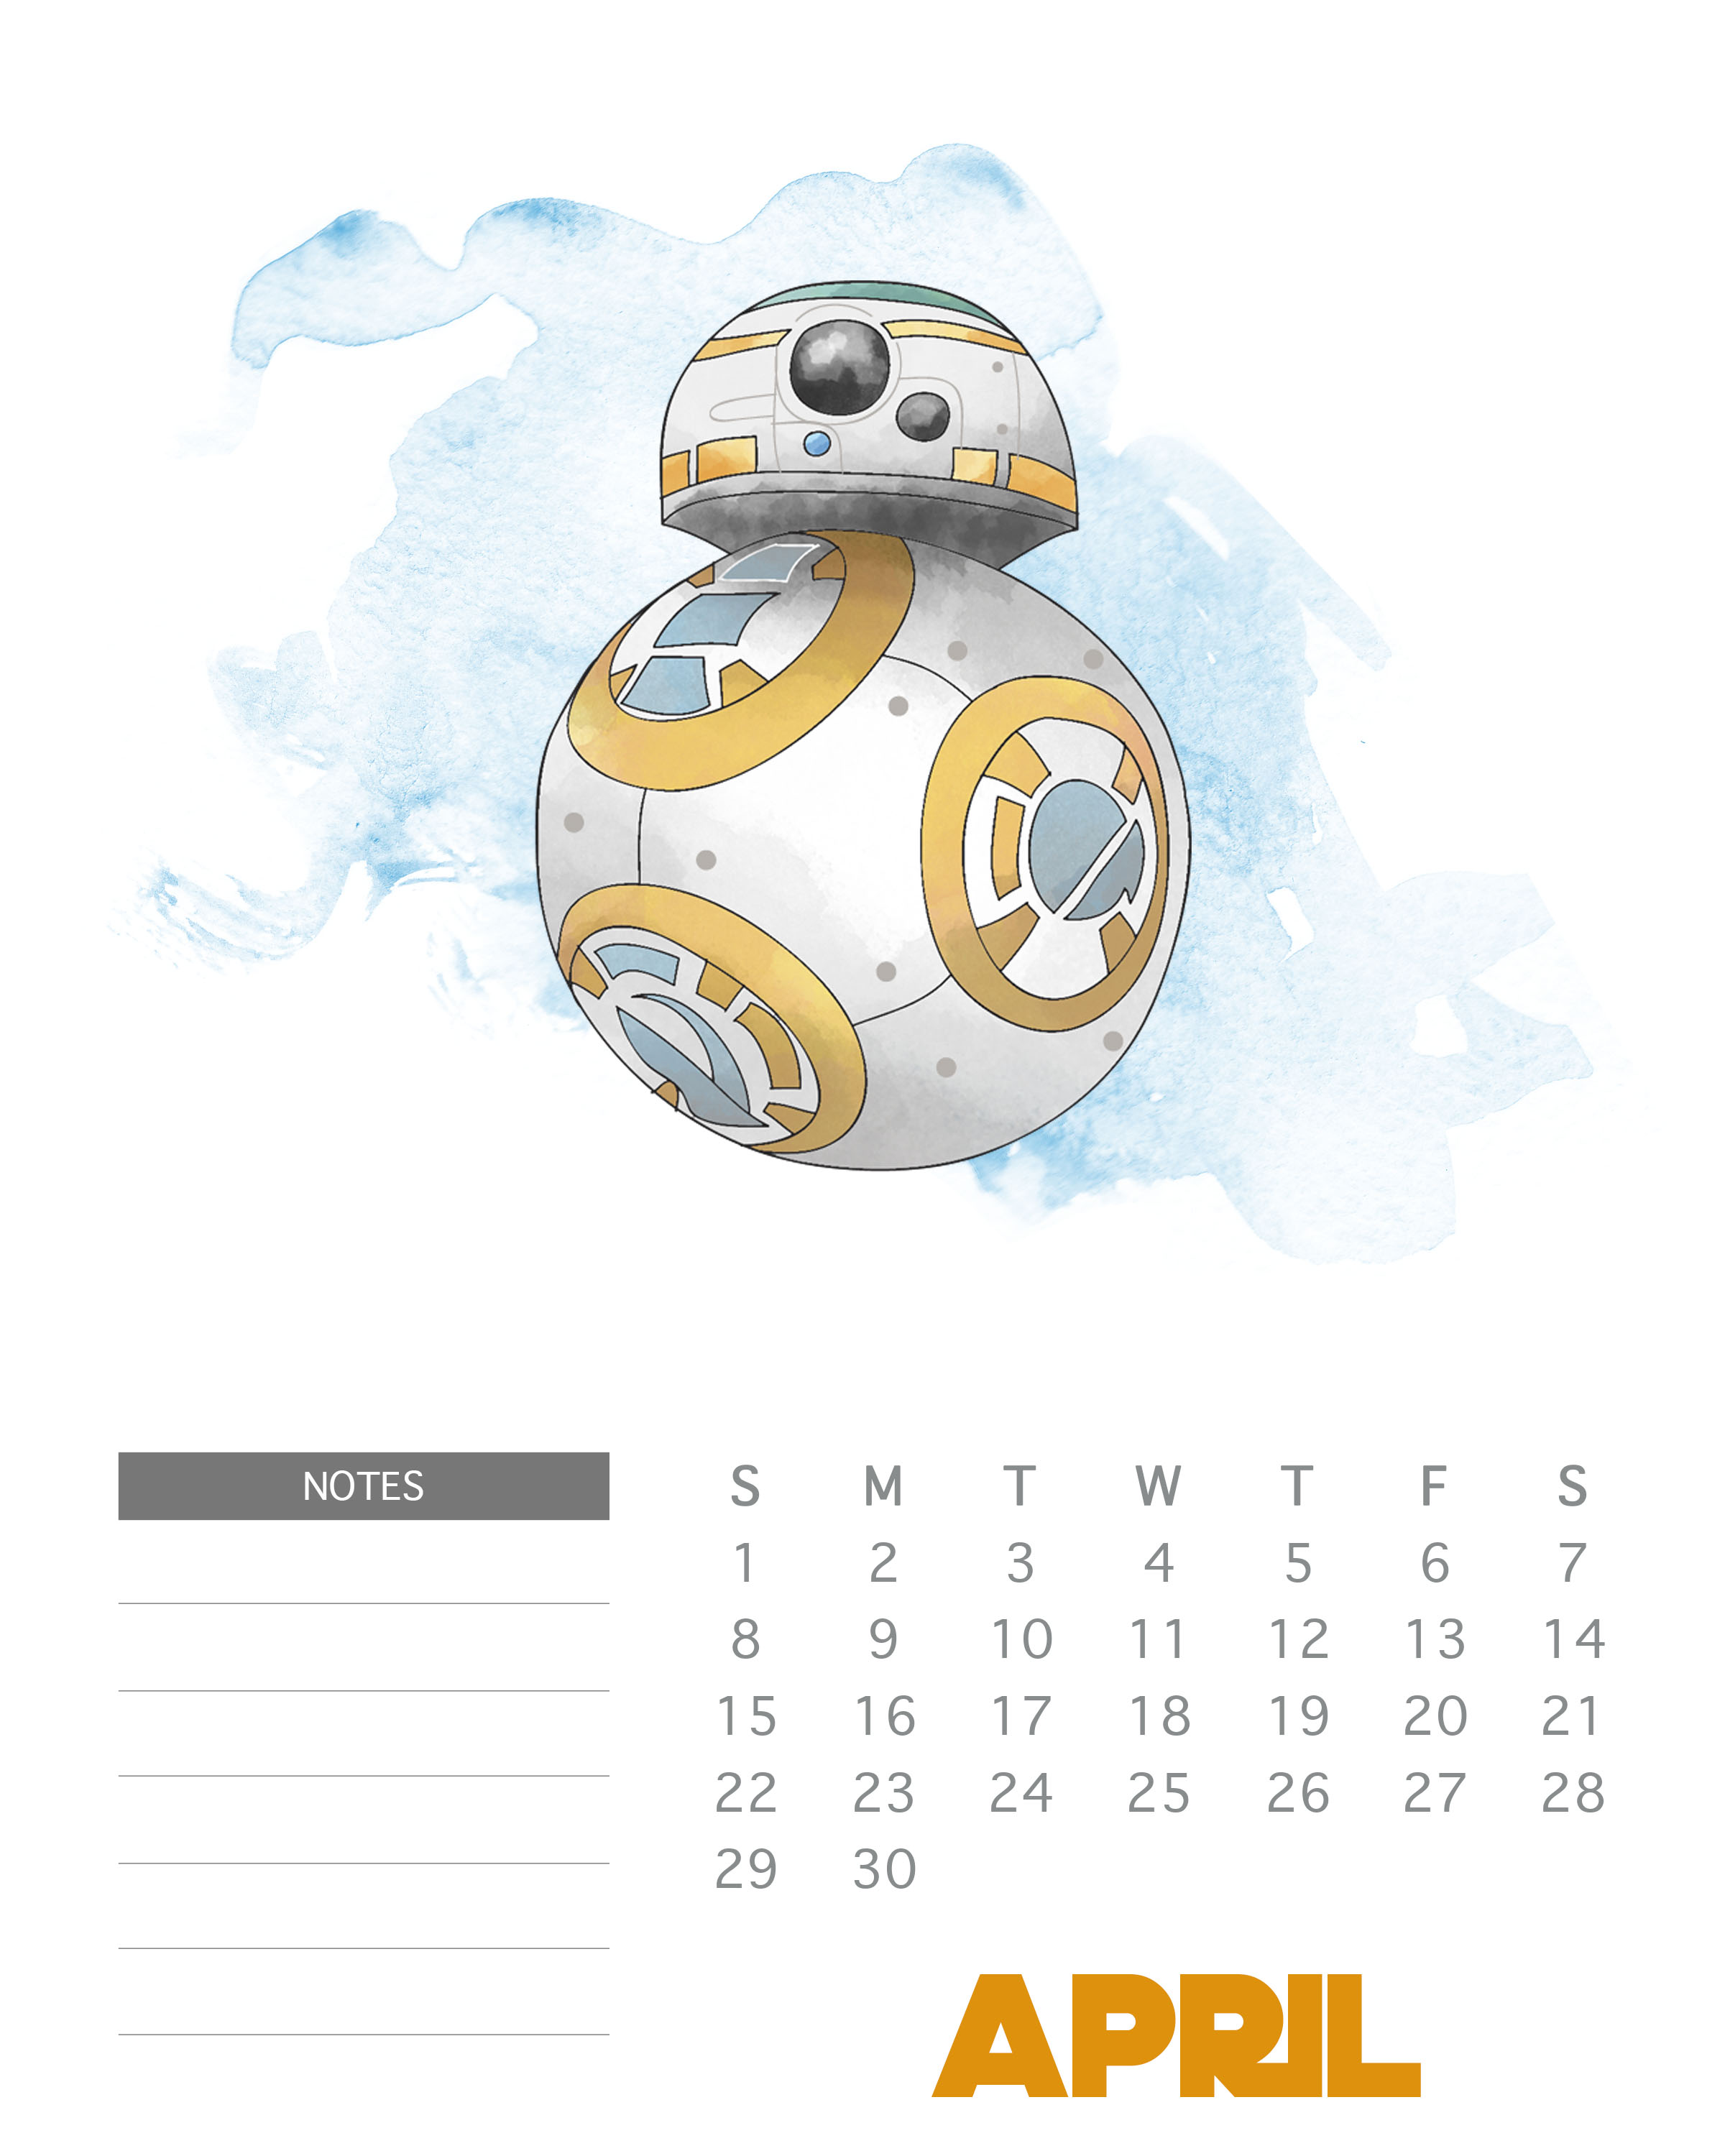 April 2018 Star Wars Calendar